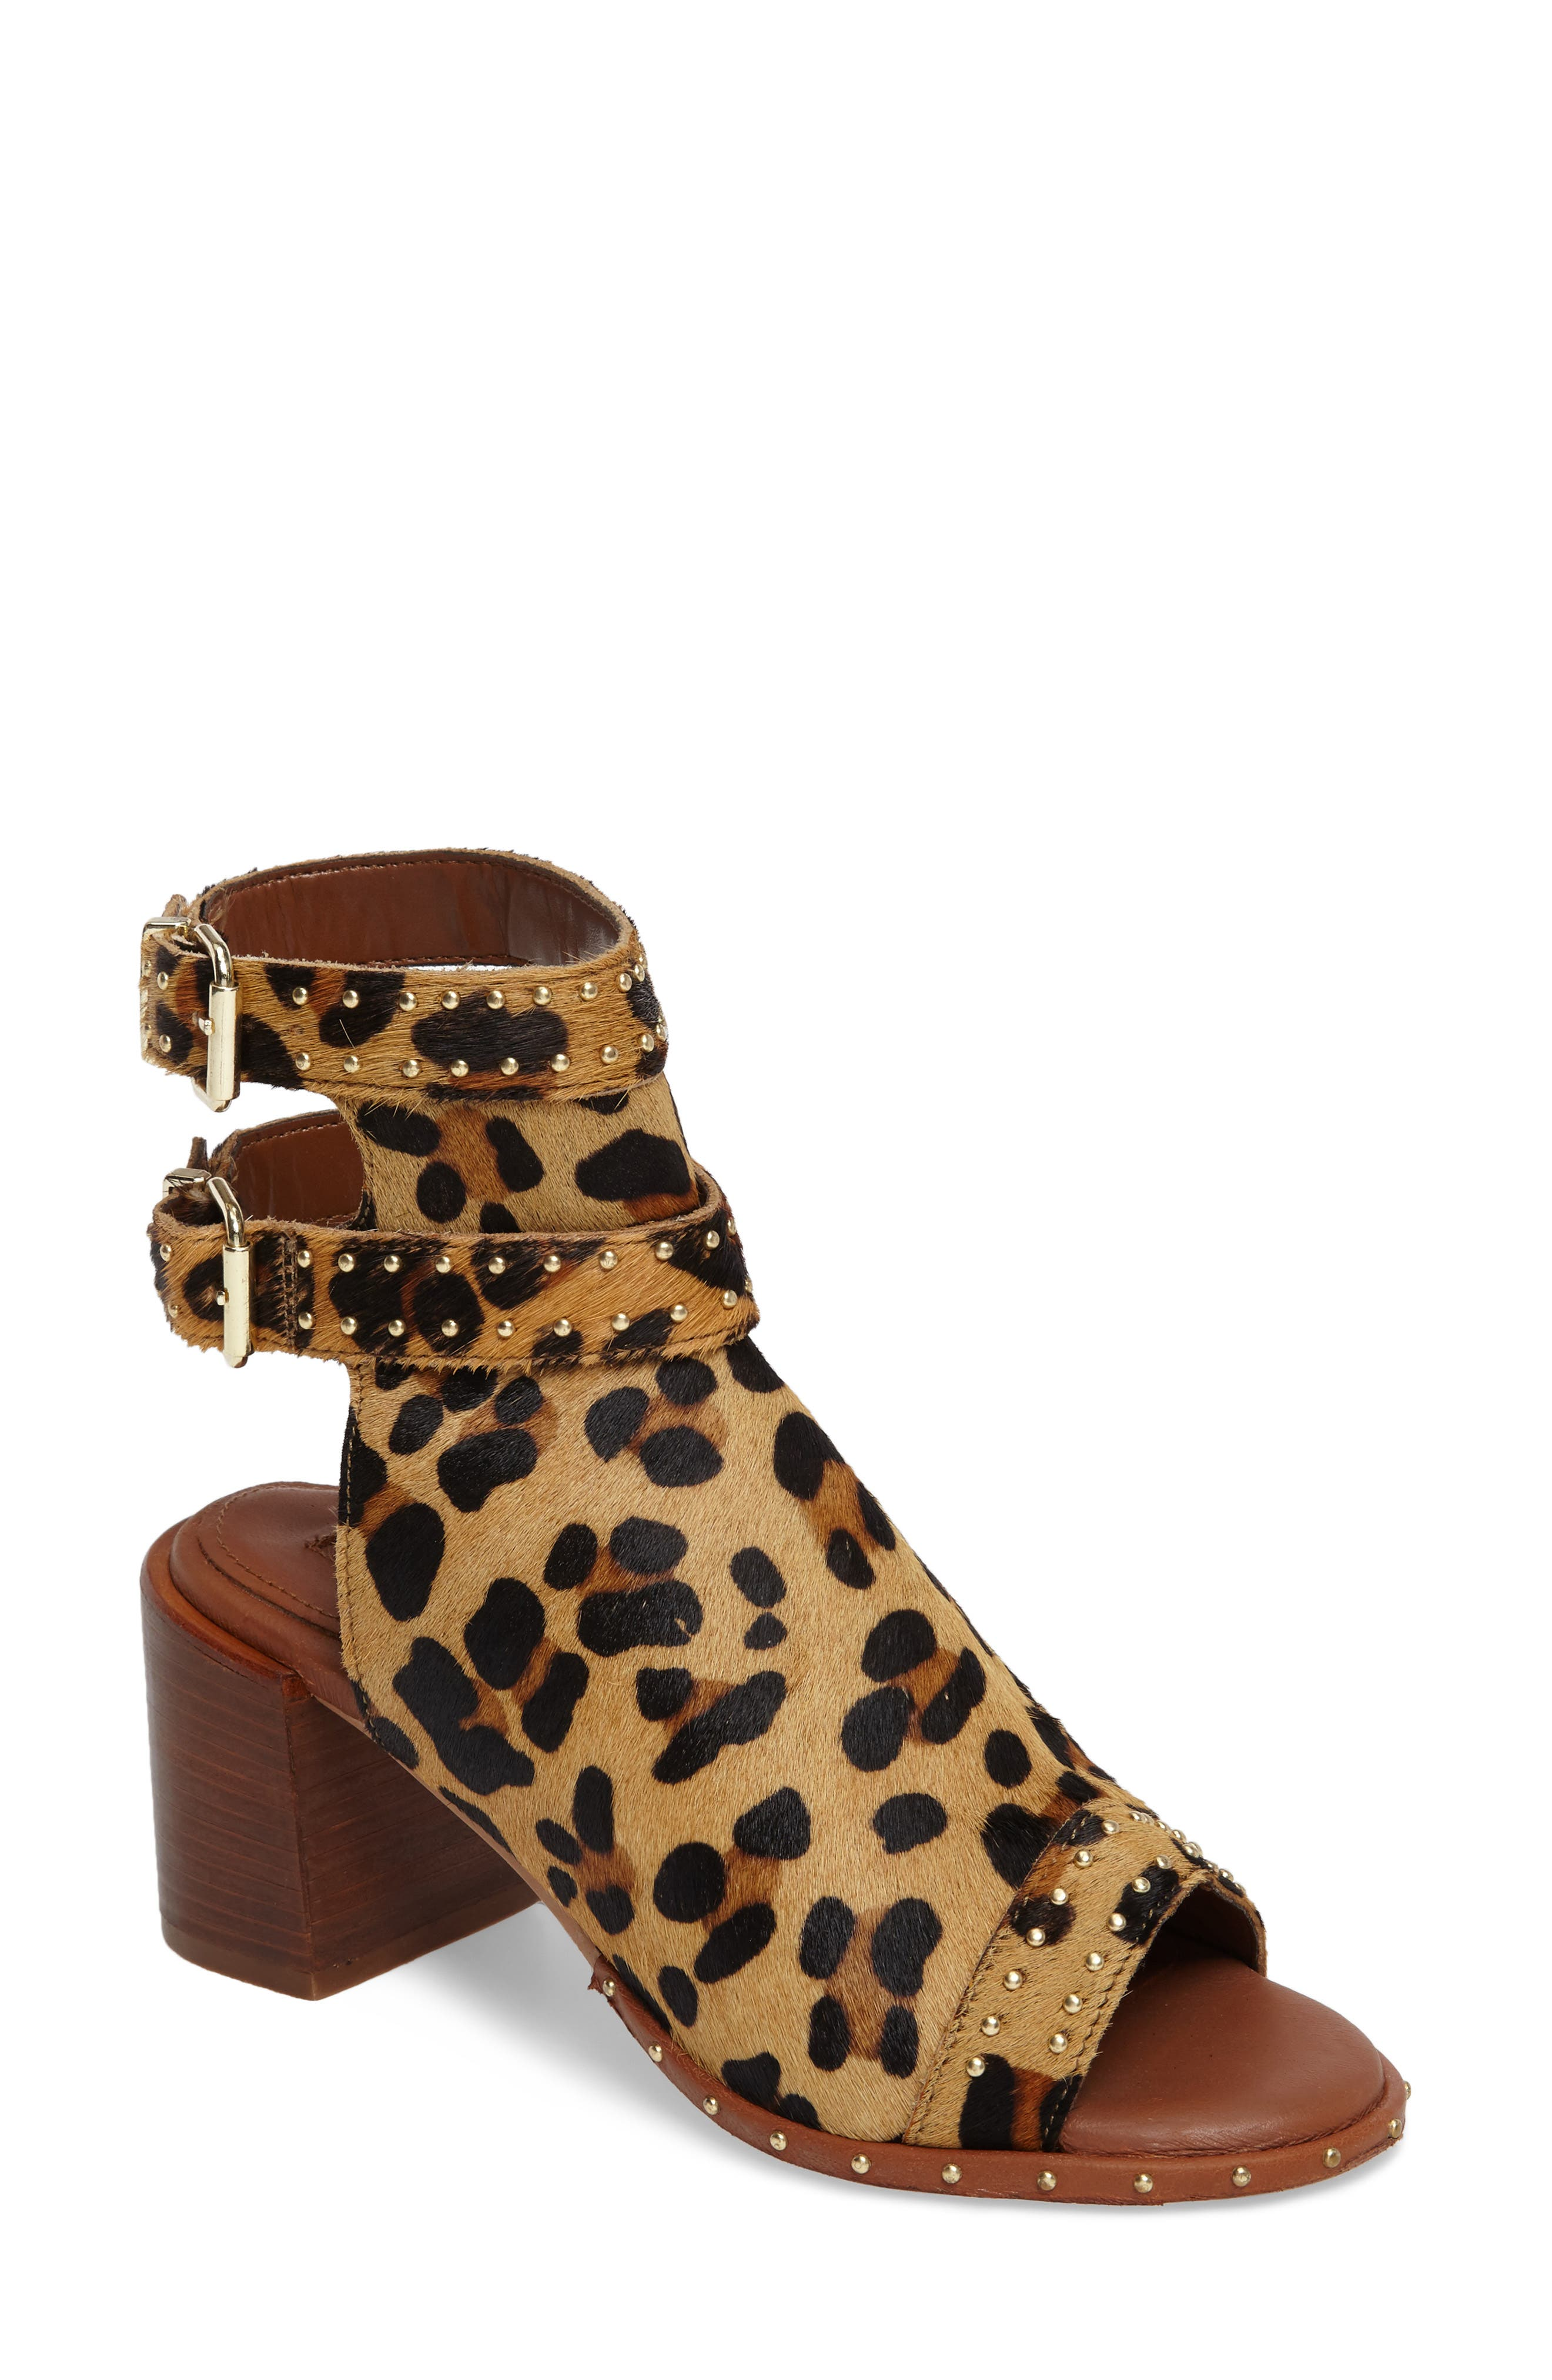 Alternate Image 1 Selected - Topshop North Studded Bootie Sandal (Women)